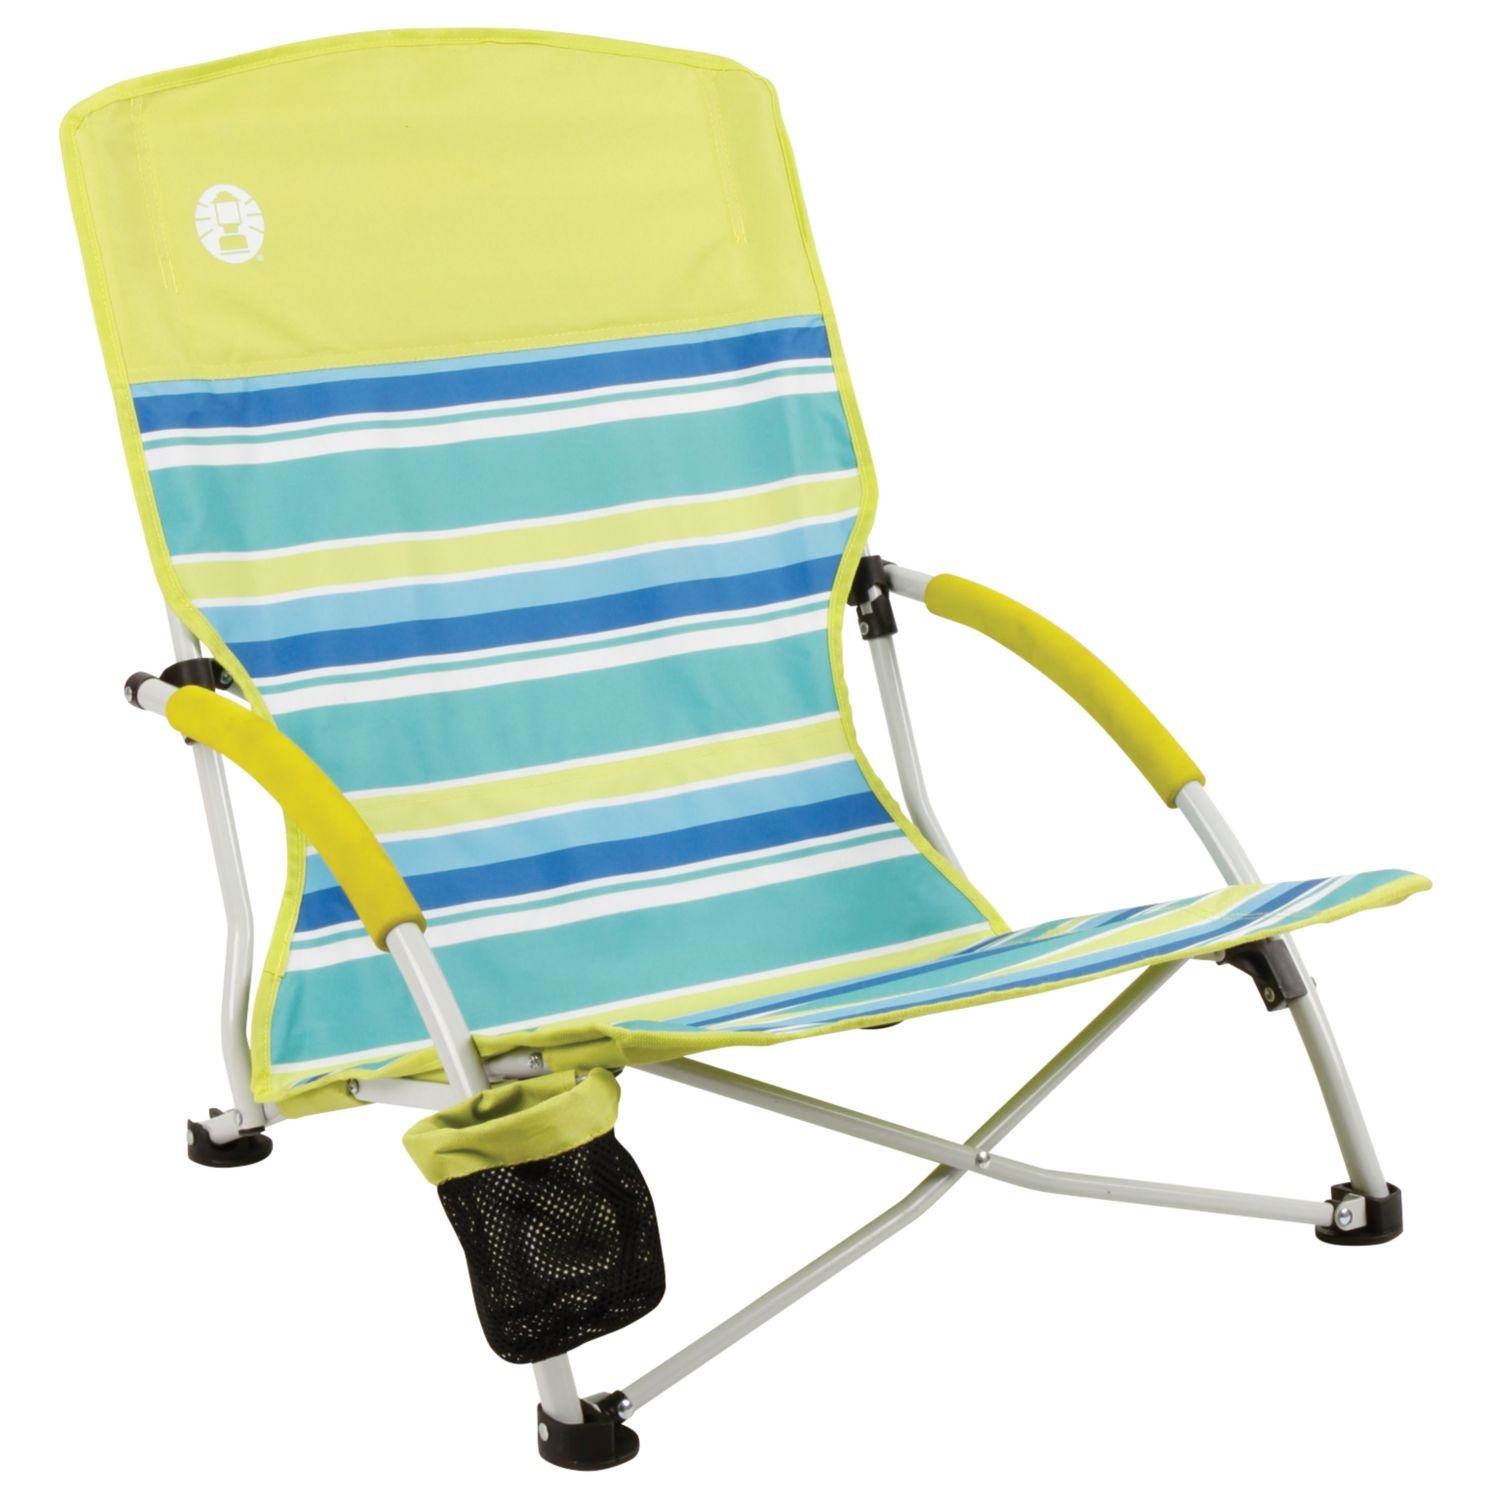 Folding Lawn Chairs Walmart Coleman Beach Deluxe Low Sling Chair Citrus